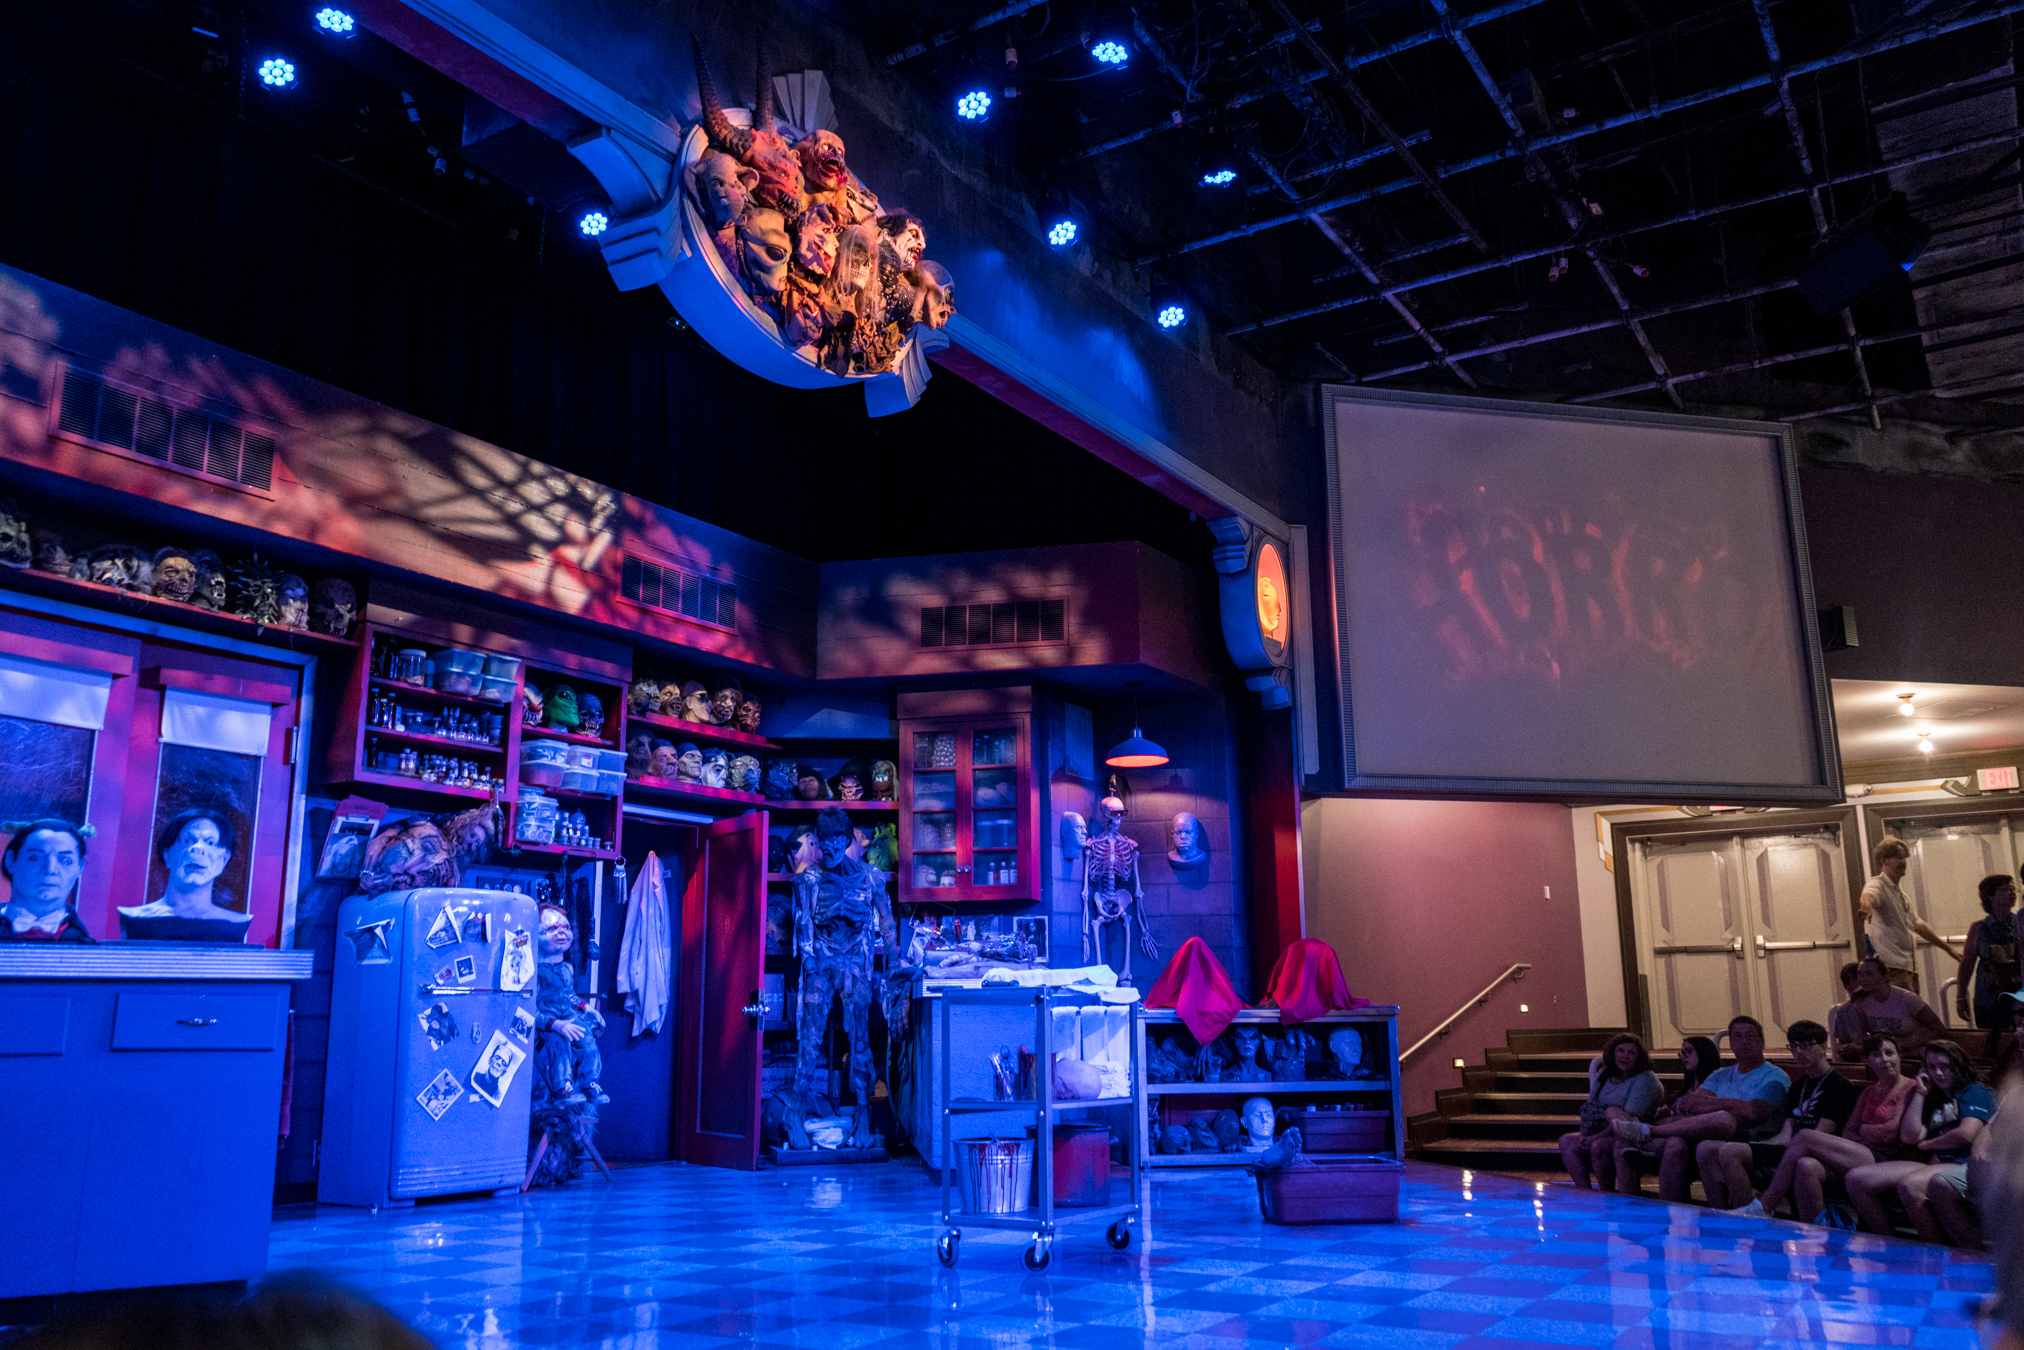 The stage for Universal Orlando's Horror Make-Up Show resembles a creative laboratory with lots of props and prosthetic masks from famous horror films